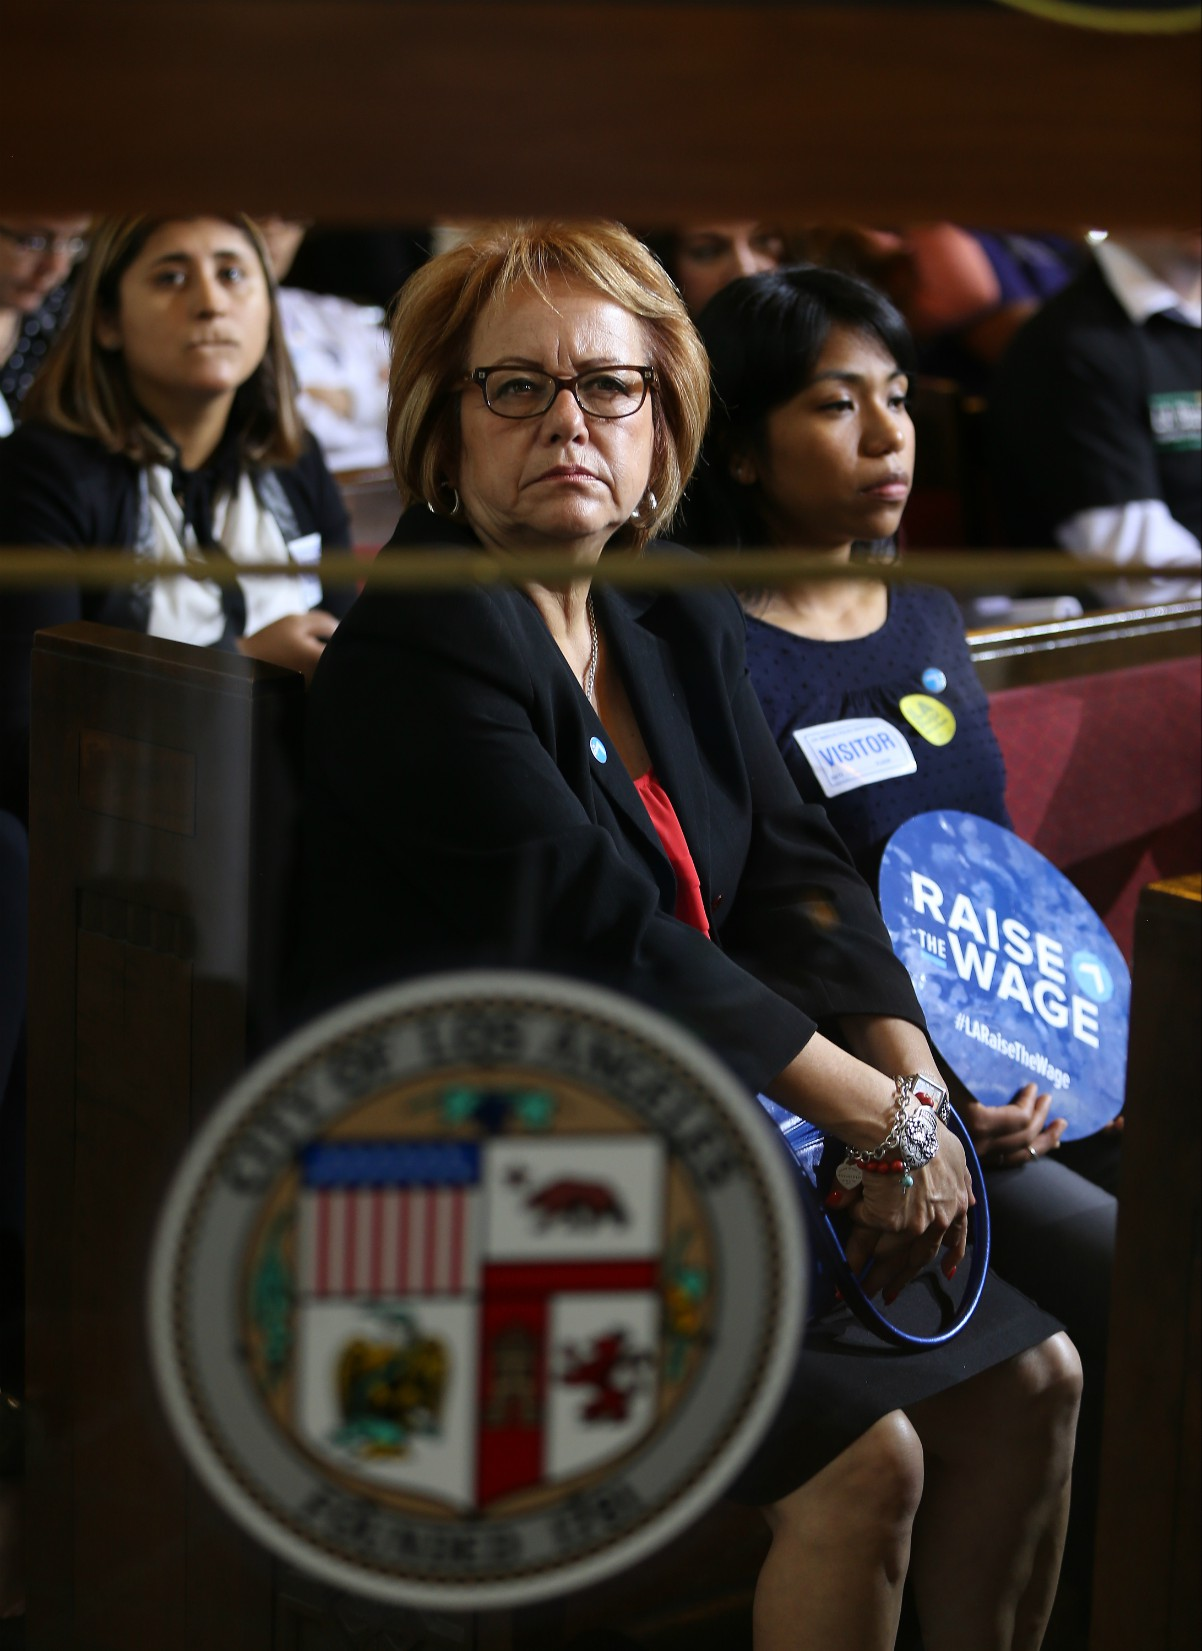 SB 1399, California's Garment Worker Protection Act, hit an impasse after it failed to be called to a vote before the state Assembly.